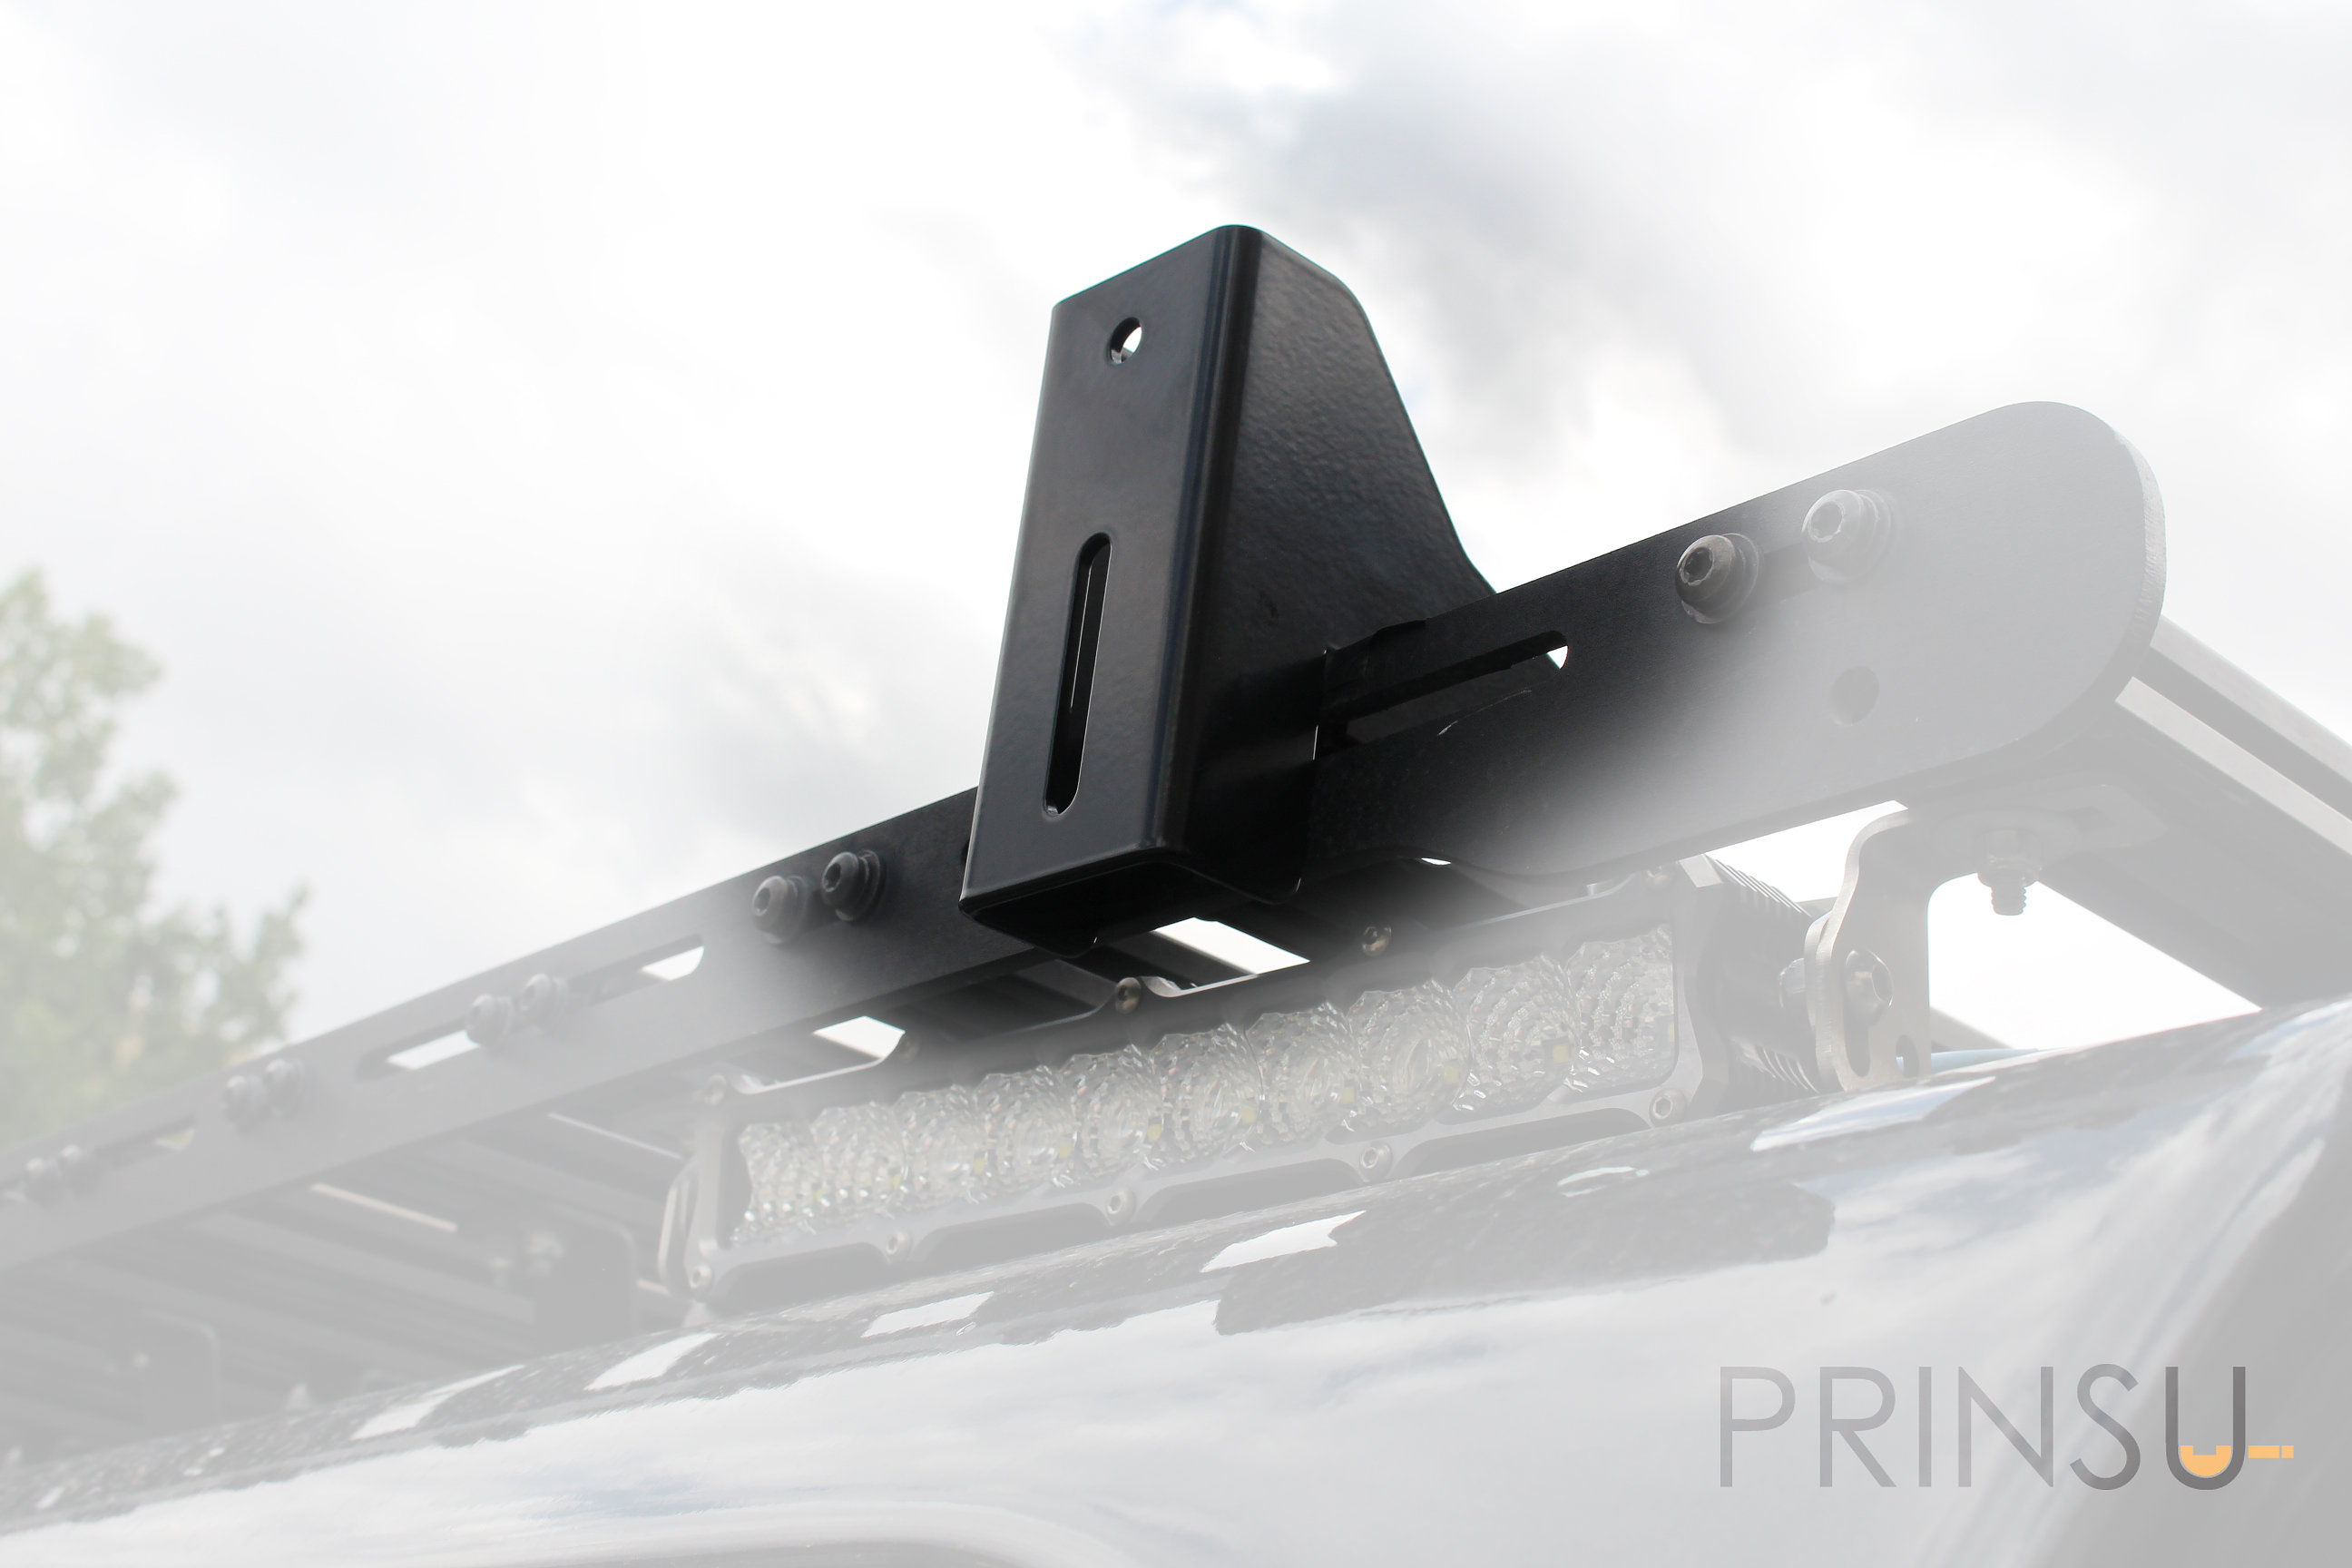 PrInSus Awning Mounting Bracket